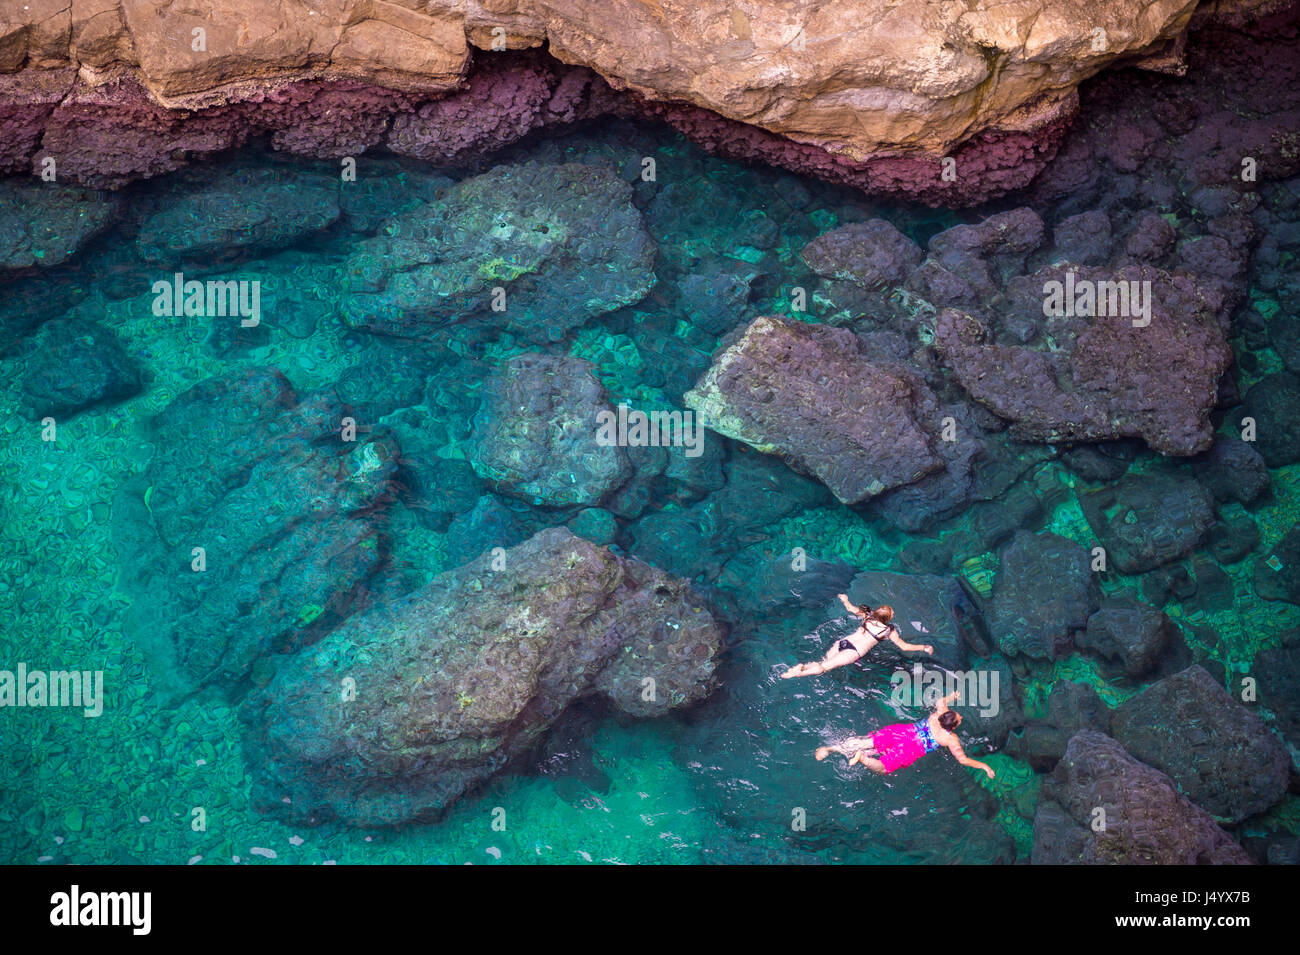 View from the rock cliffs of swimmers exploring the crystal clear Mediterranean waters of a cove off the coast of - Stock Image